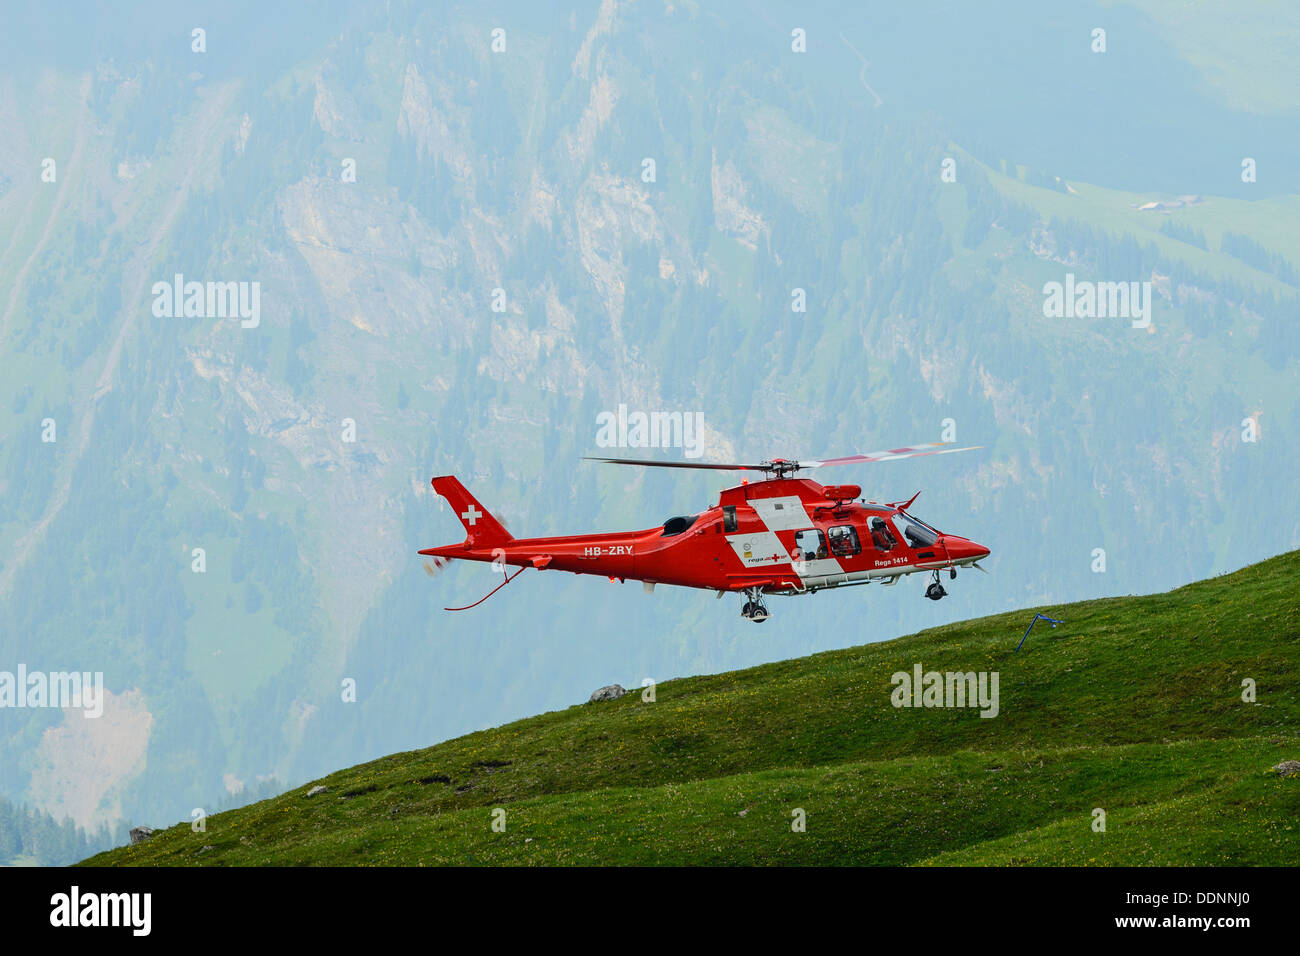 AgustaWestland Da Vinci helicopter of the Swiss Air rescue service REGA in action near Grindelwald - Stock Image